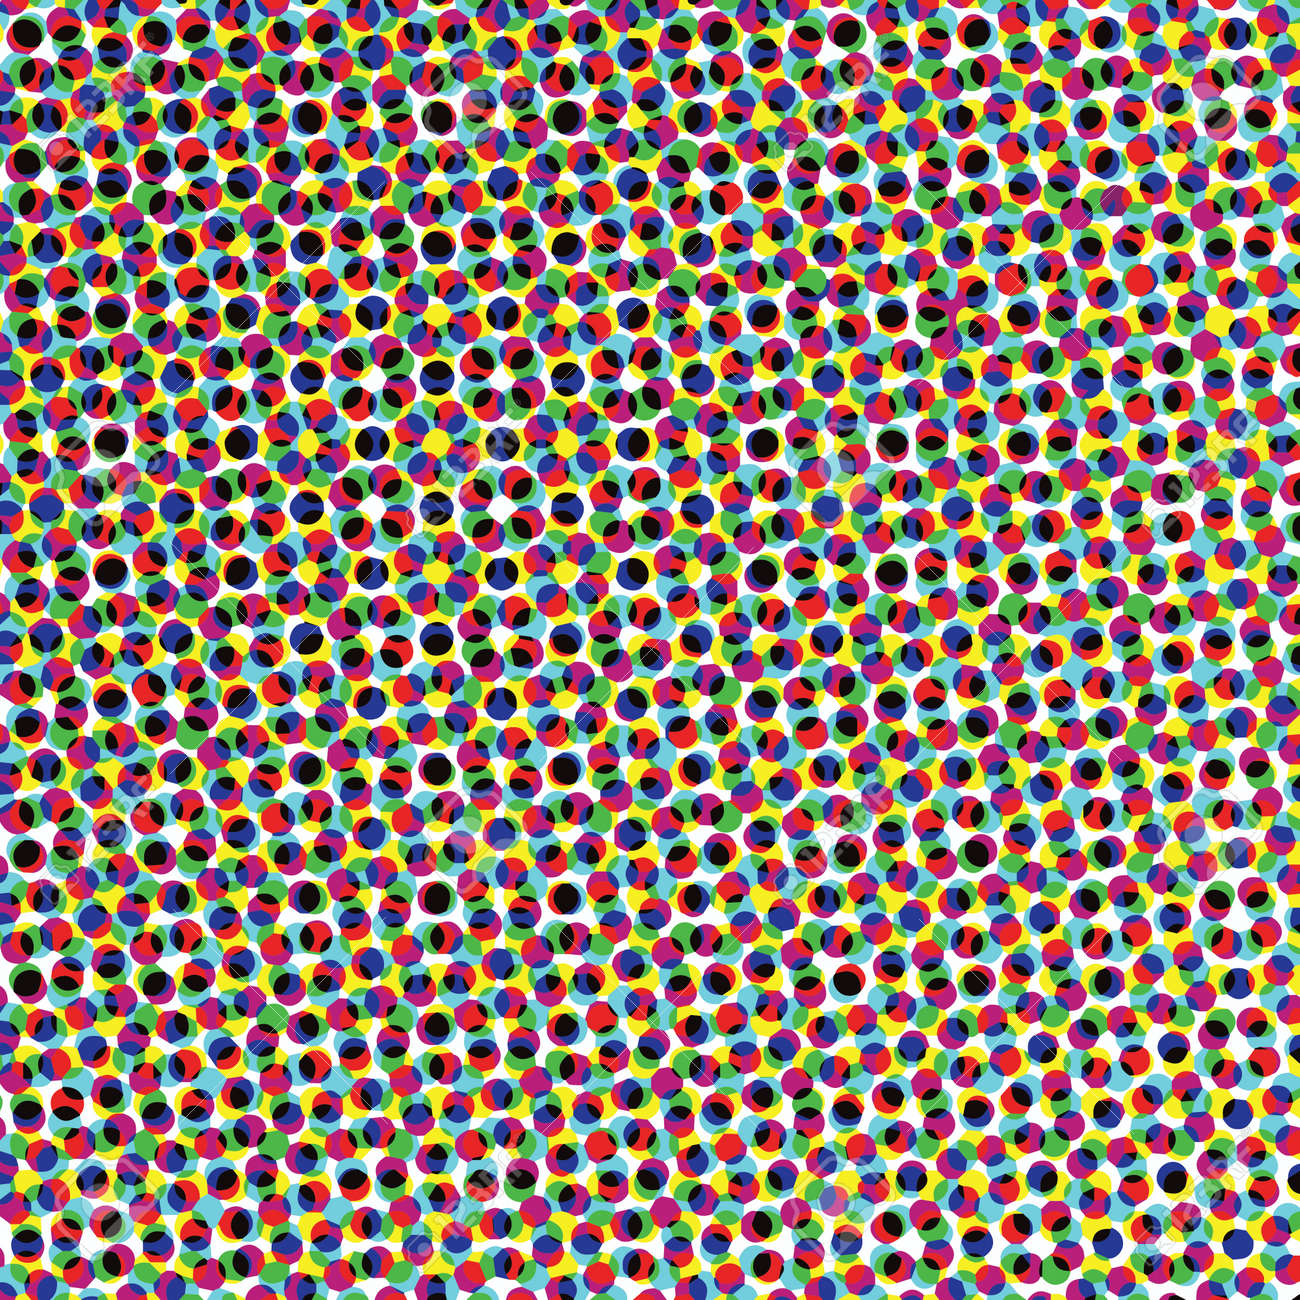 A close up af a color halftone image in vector. Looks like confetti. - 170063006